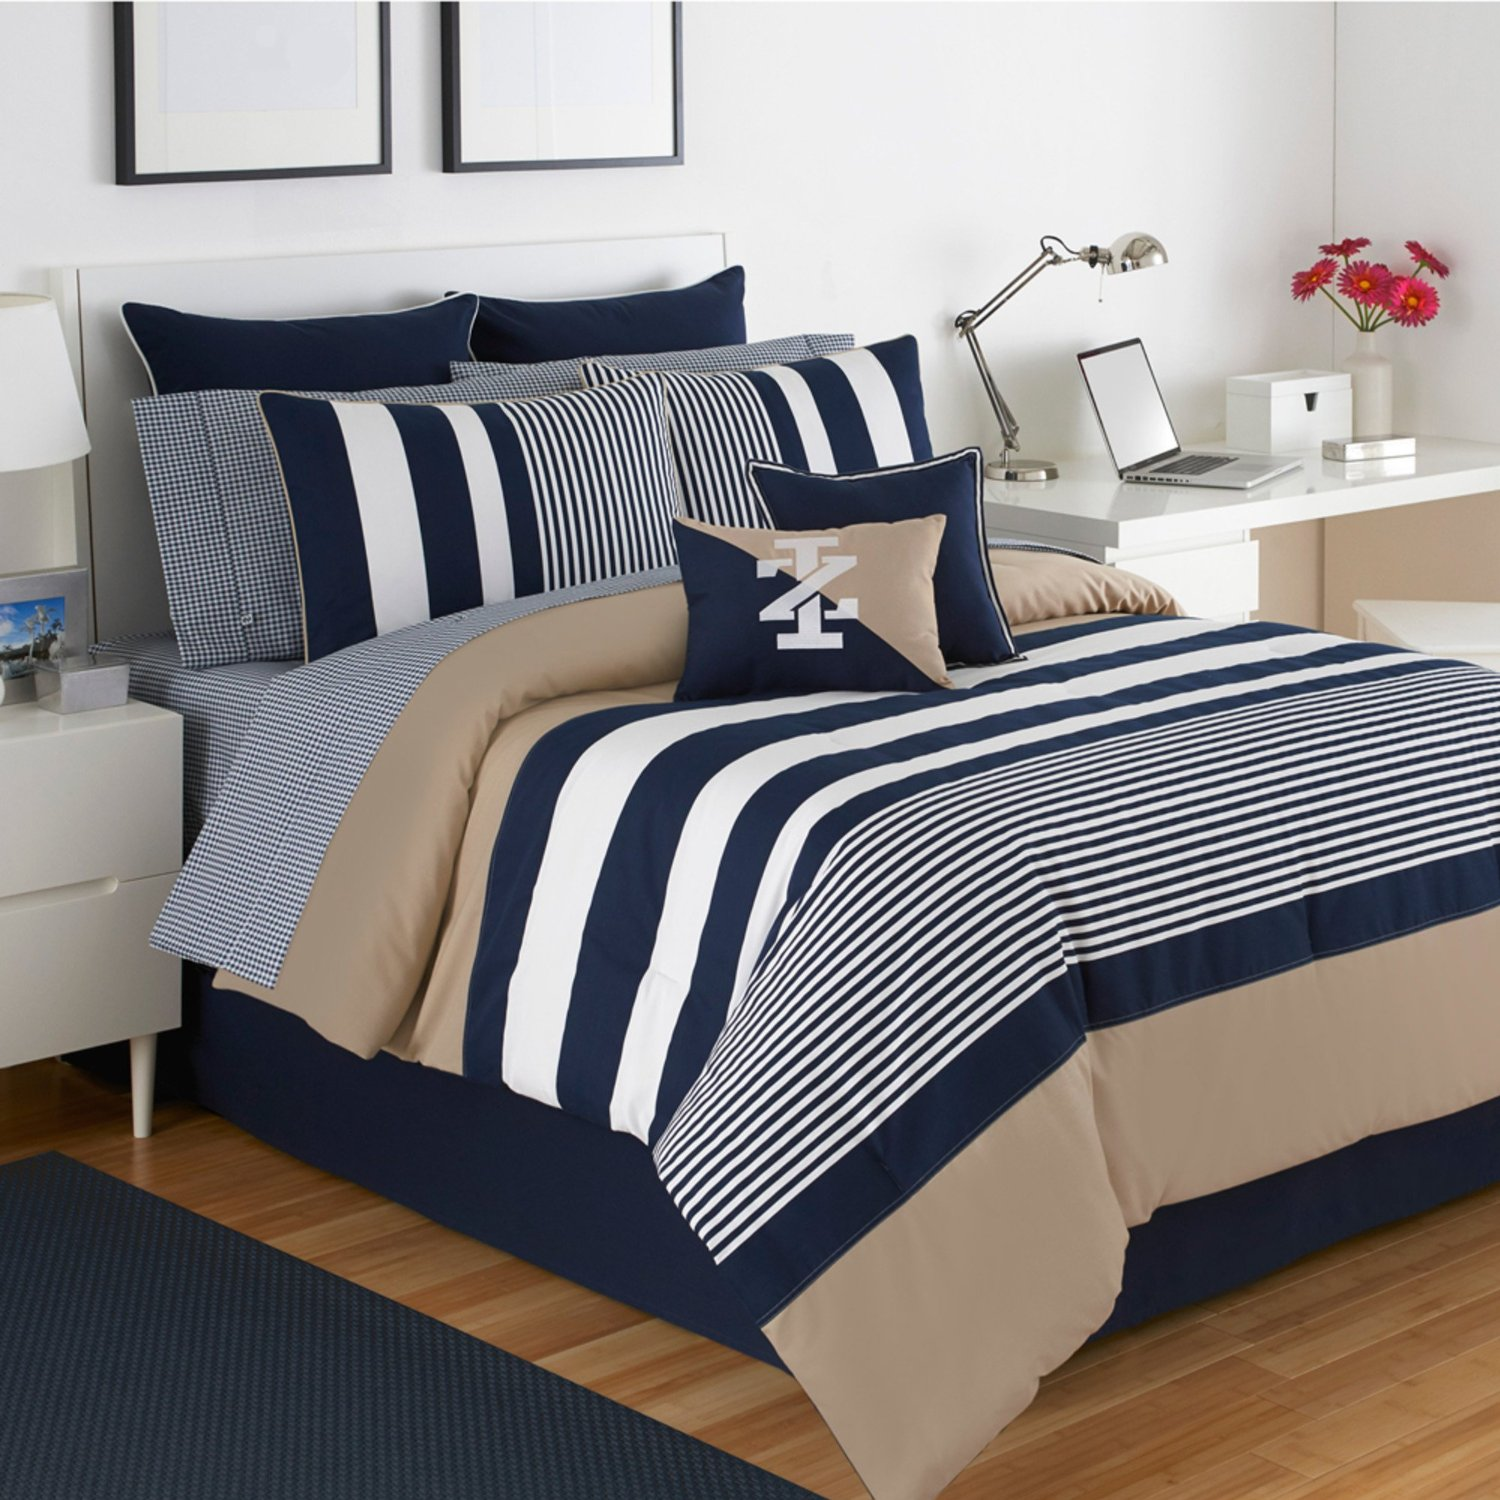 comforter sheets bring for masculine size bedding comforters sets style to of male men full guys homesfeed cool bedroom s bed